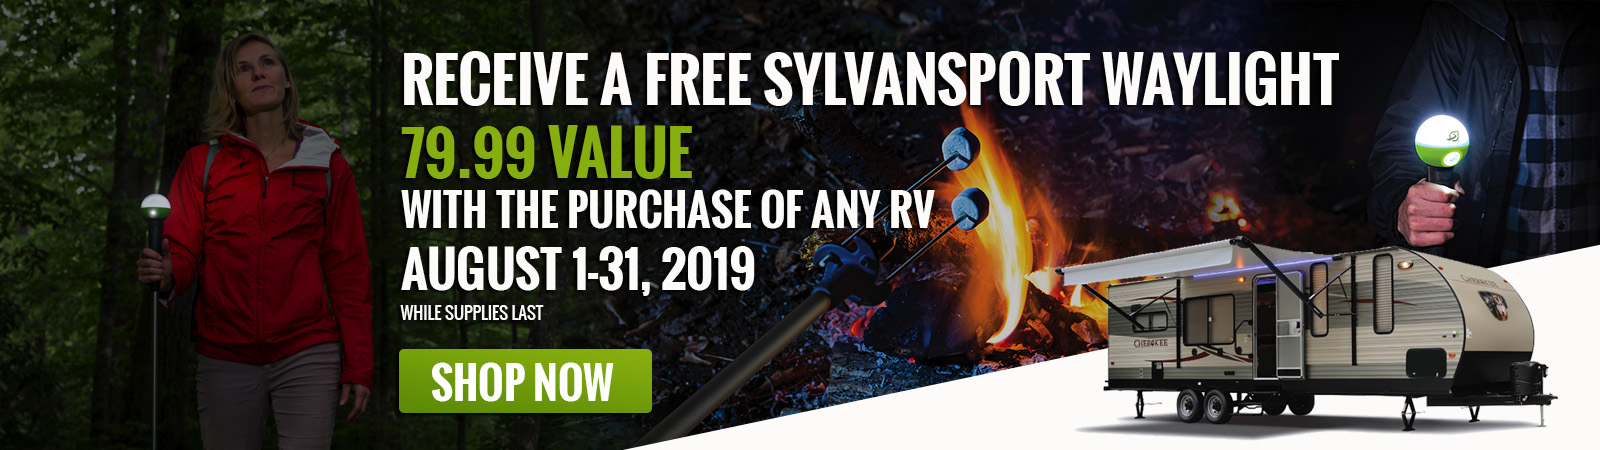 Receive a free Sylvansport WayLight, 79.99 value with the purchase of an RV